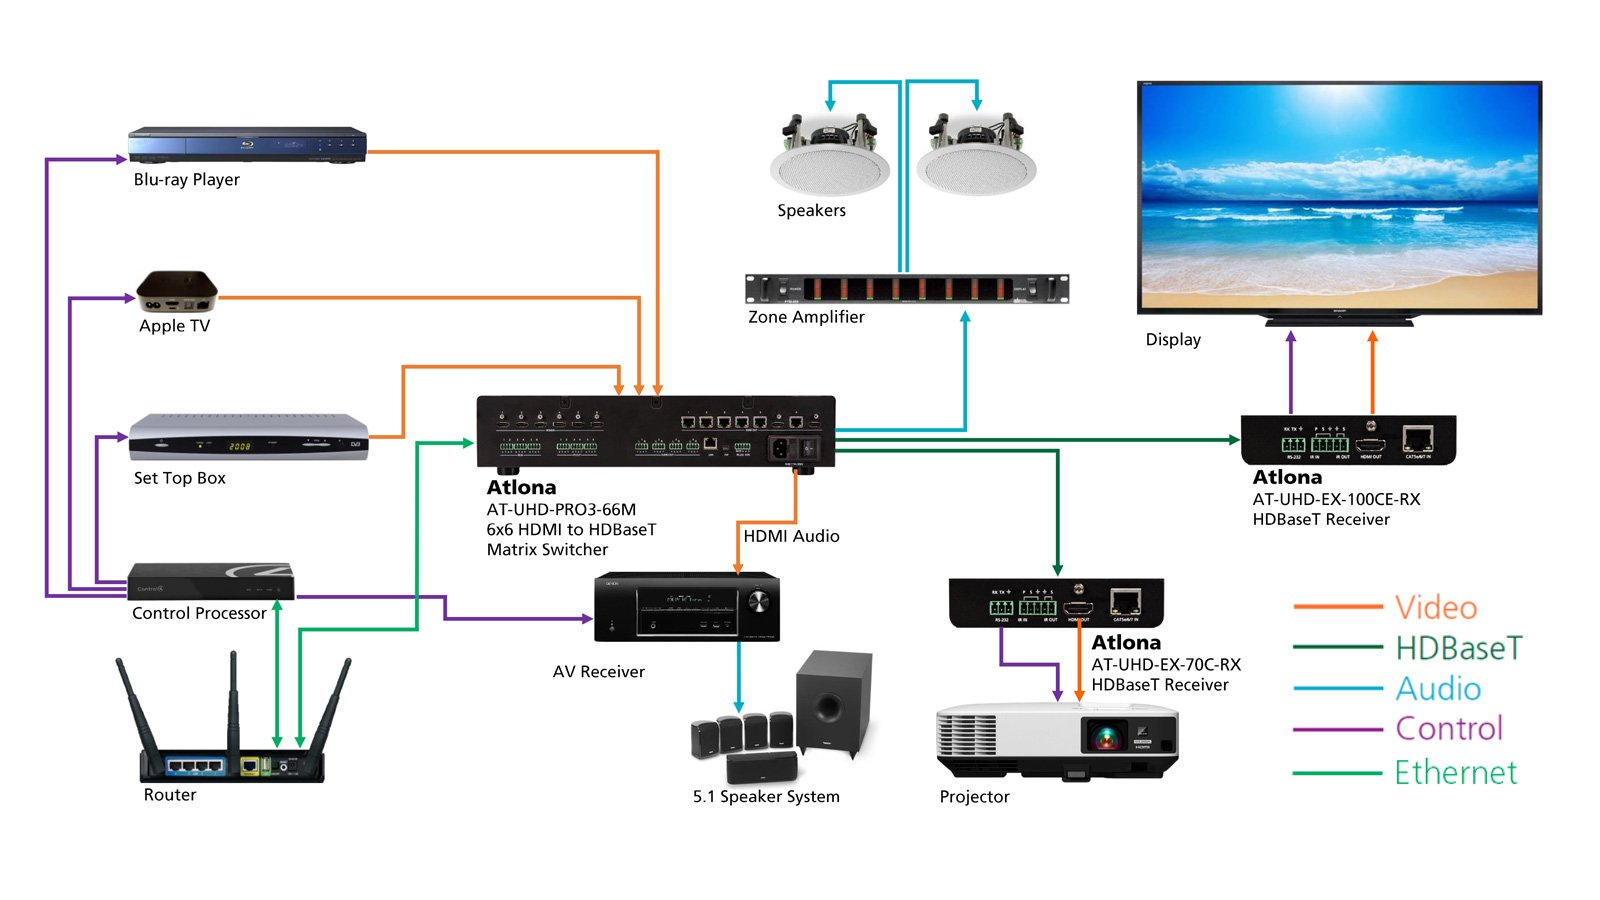 Atlona At Uhd Pro3 66m 4k Uhd Dual Distance 6x6 Hdmi To